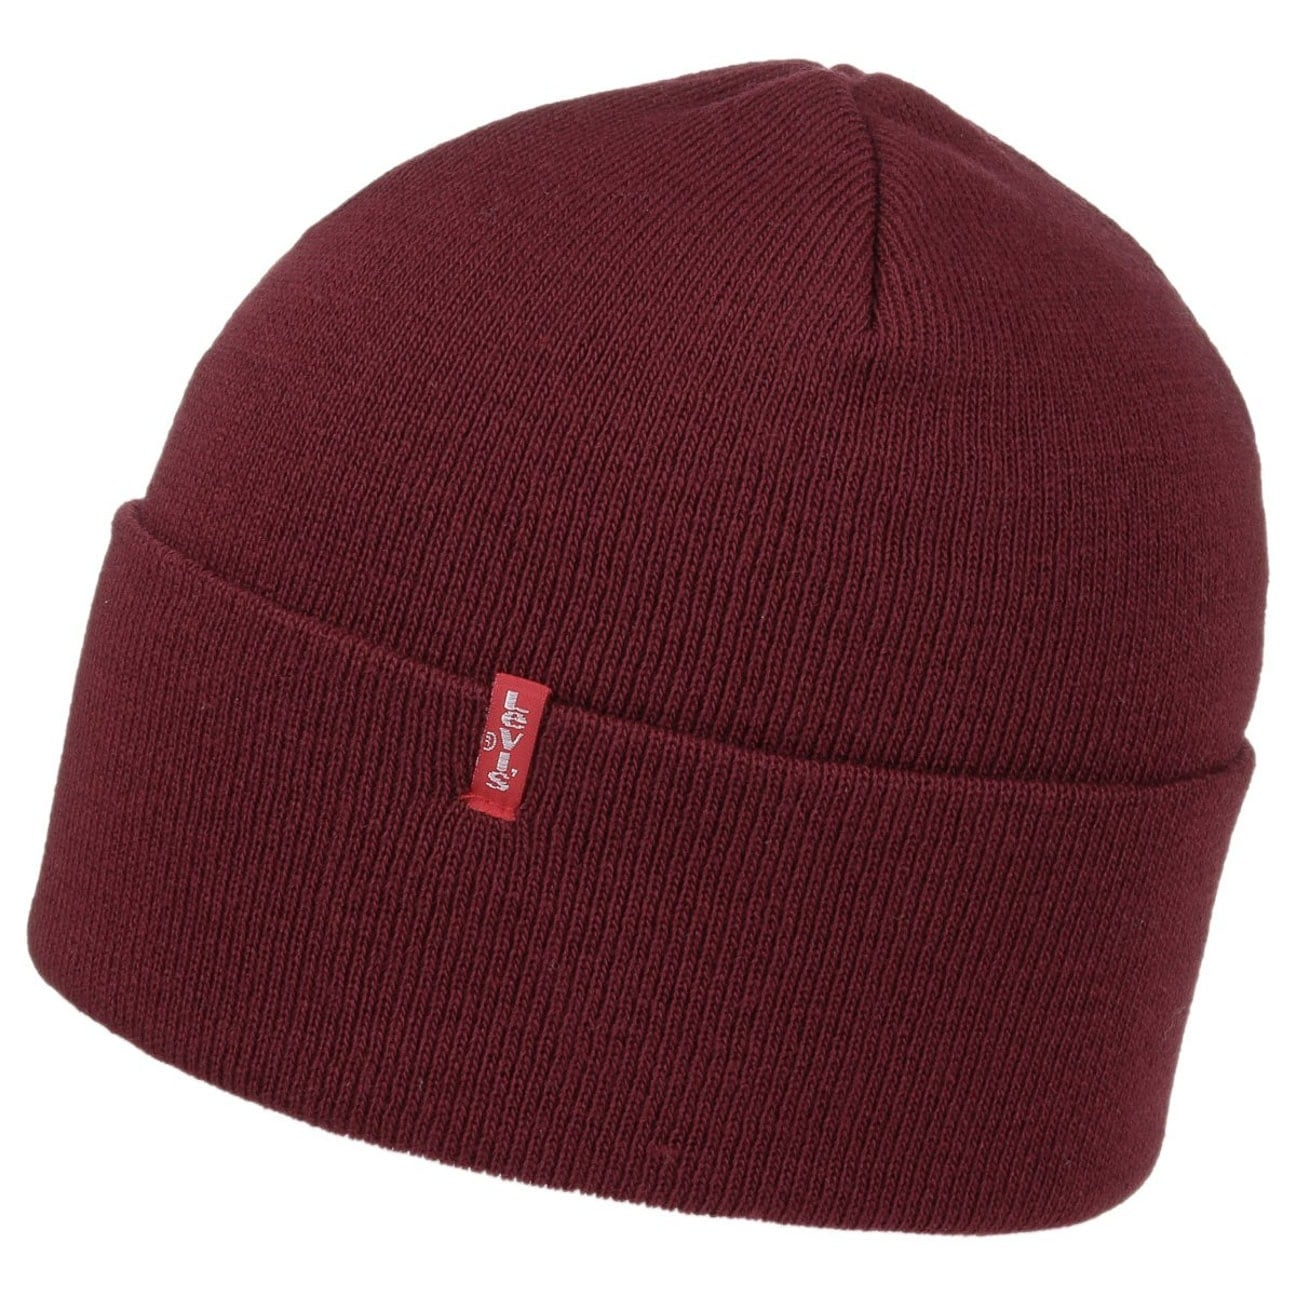 a13eed3c ... Slouchy Knit Hat by Levi´s - bordeaux 3 ...